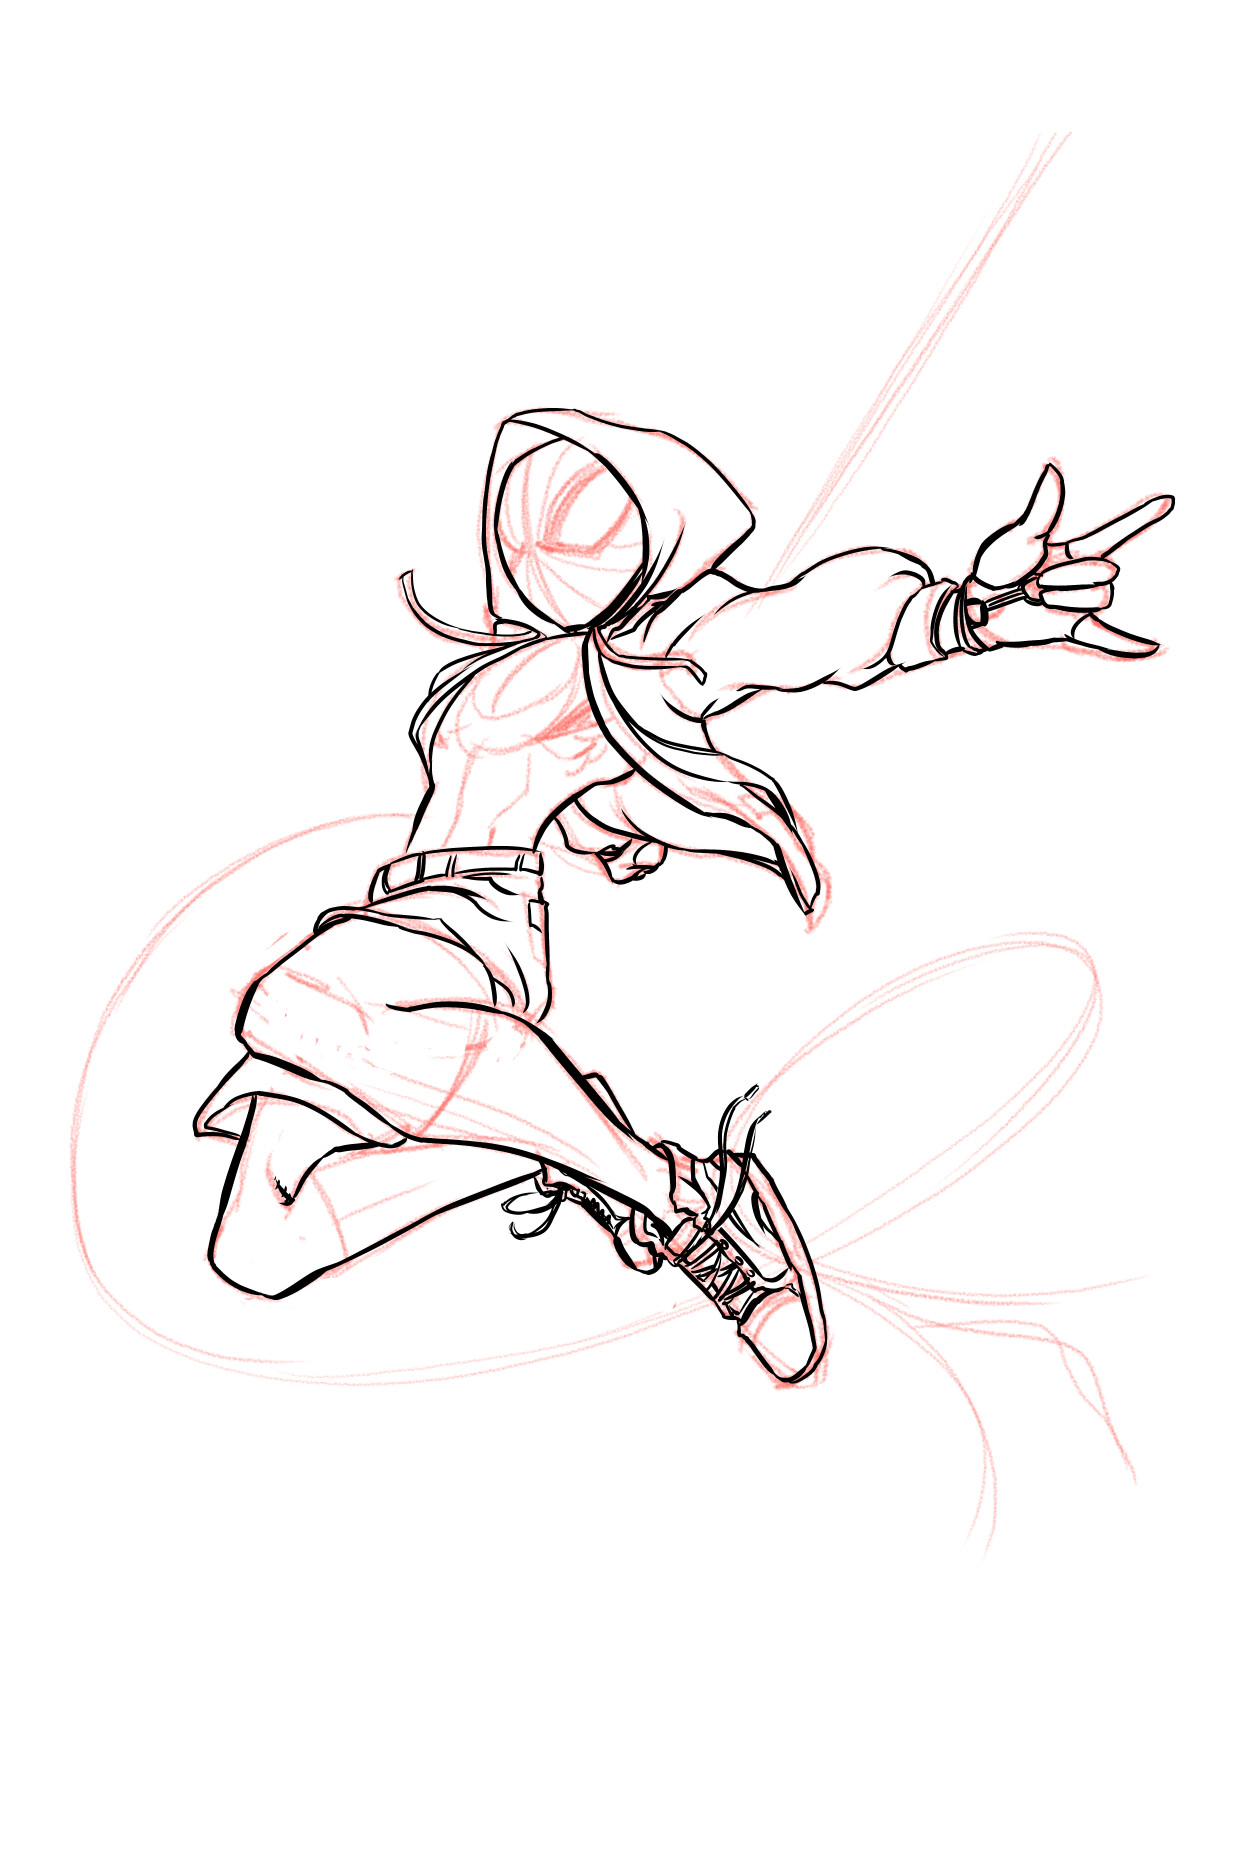 04-Inked the character on a separate layer